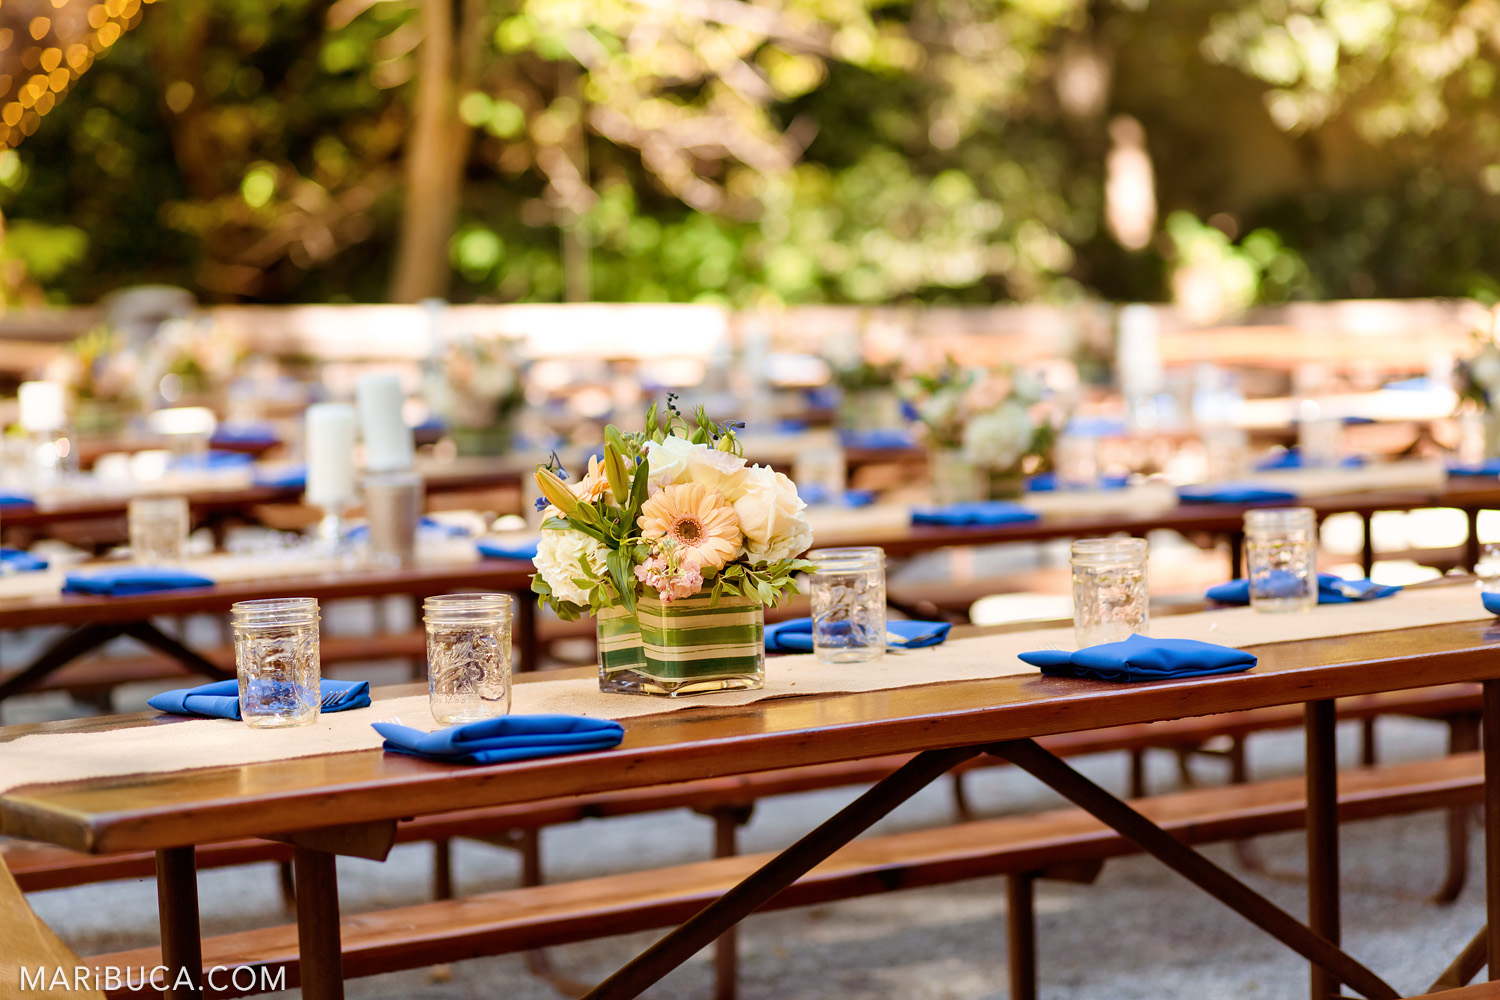 Wedding tables decoration: flowers in the vases, navy blue napkins, and glasses of water in the Saratoga Springs Venue